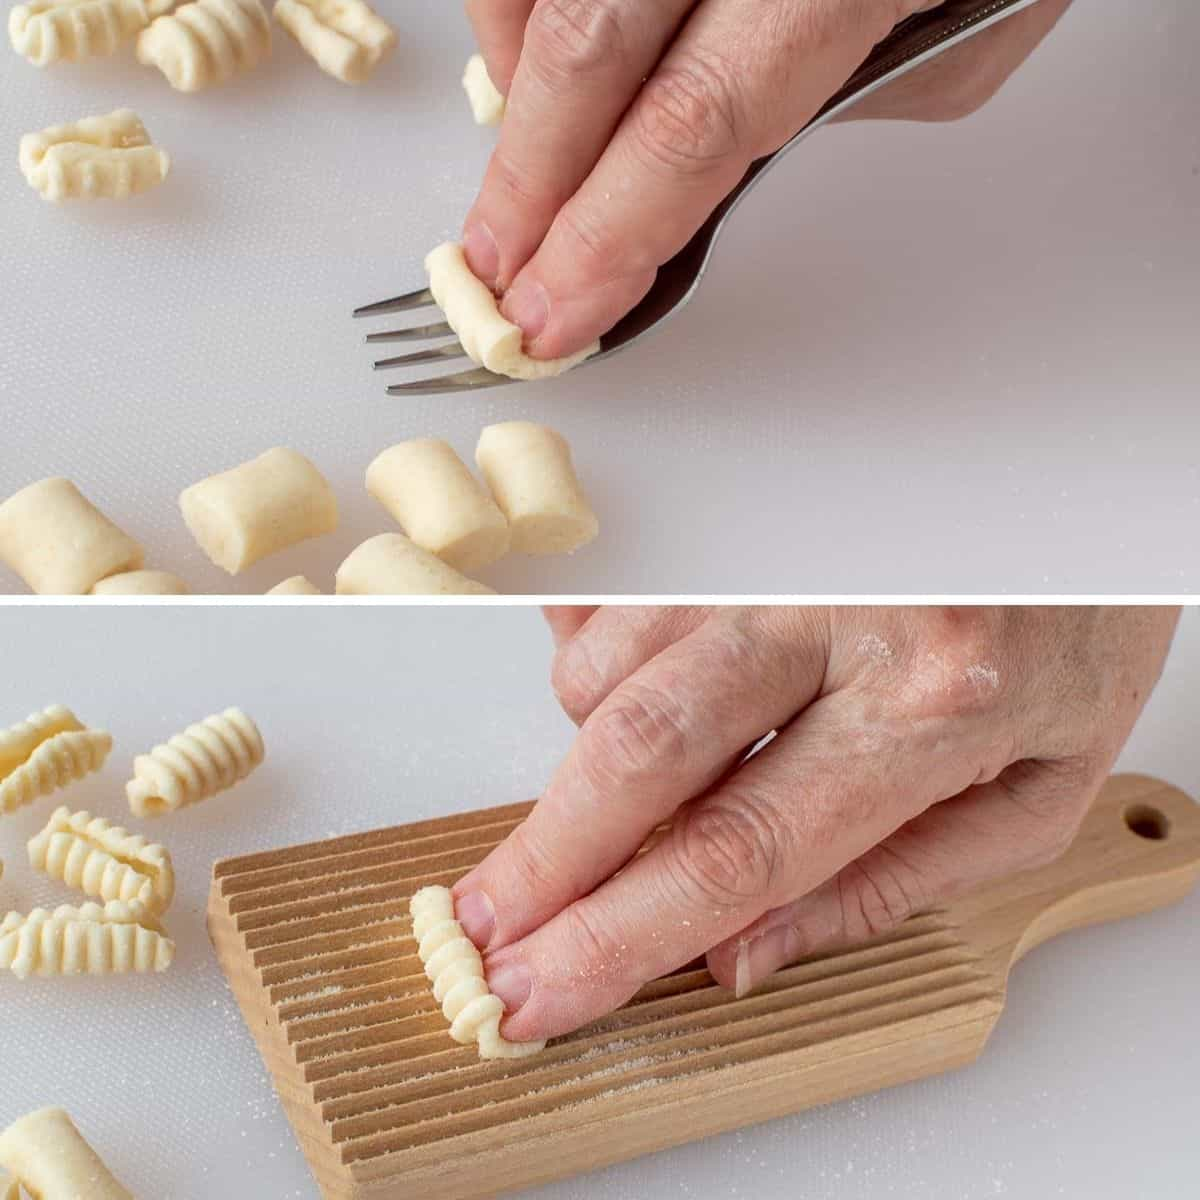 two-step photo collage showing how to shape cavatelli pasta using a fork or a cavatelli board.